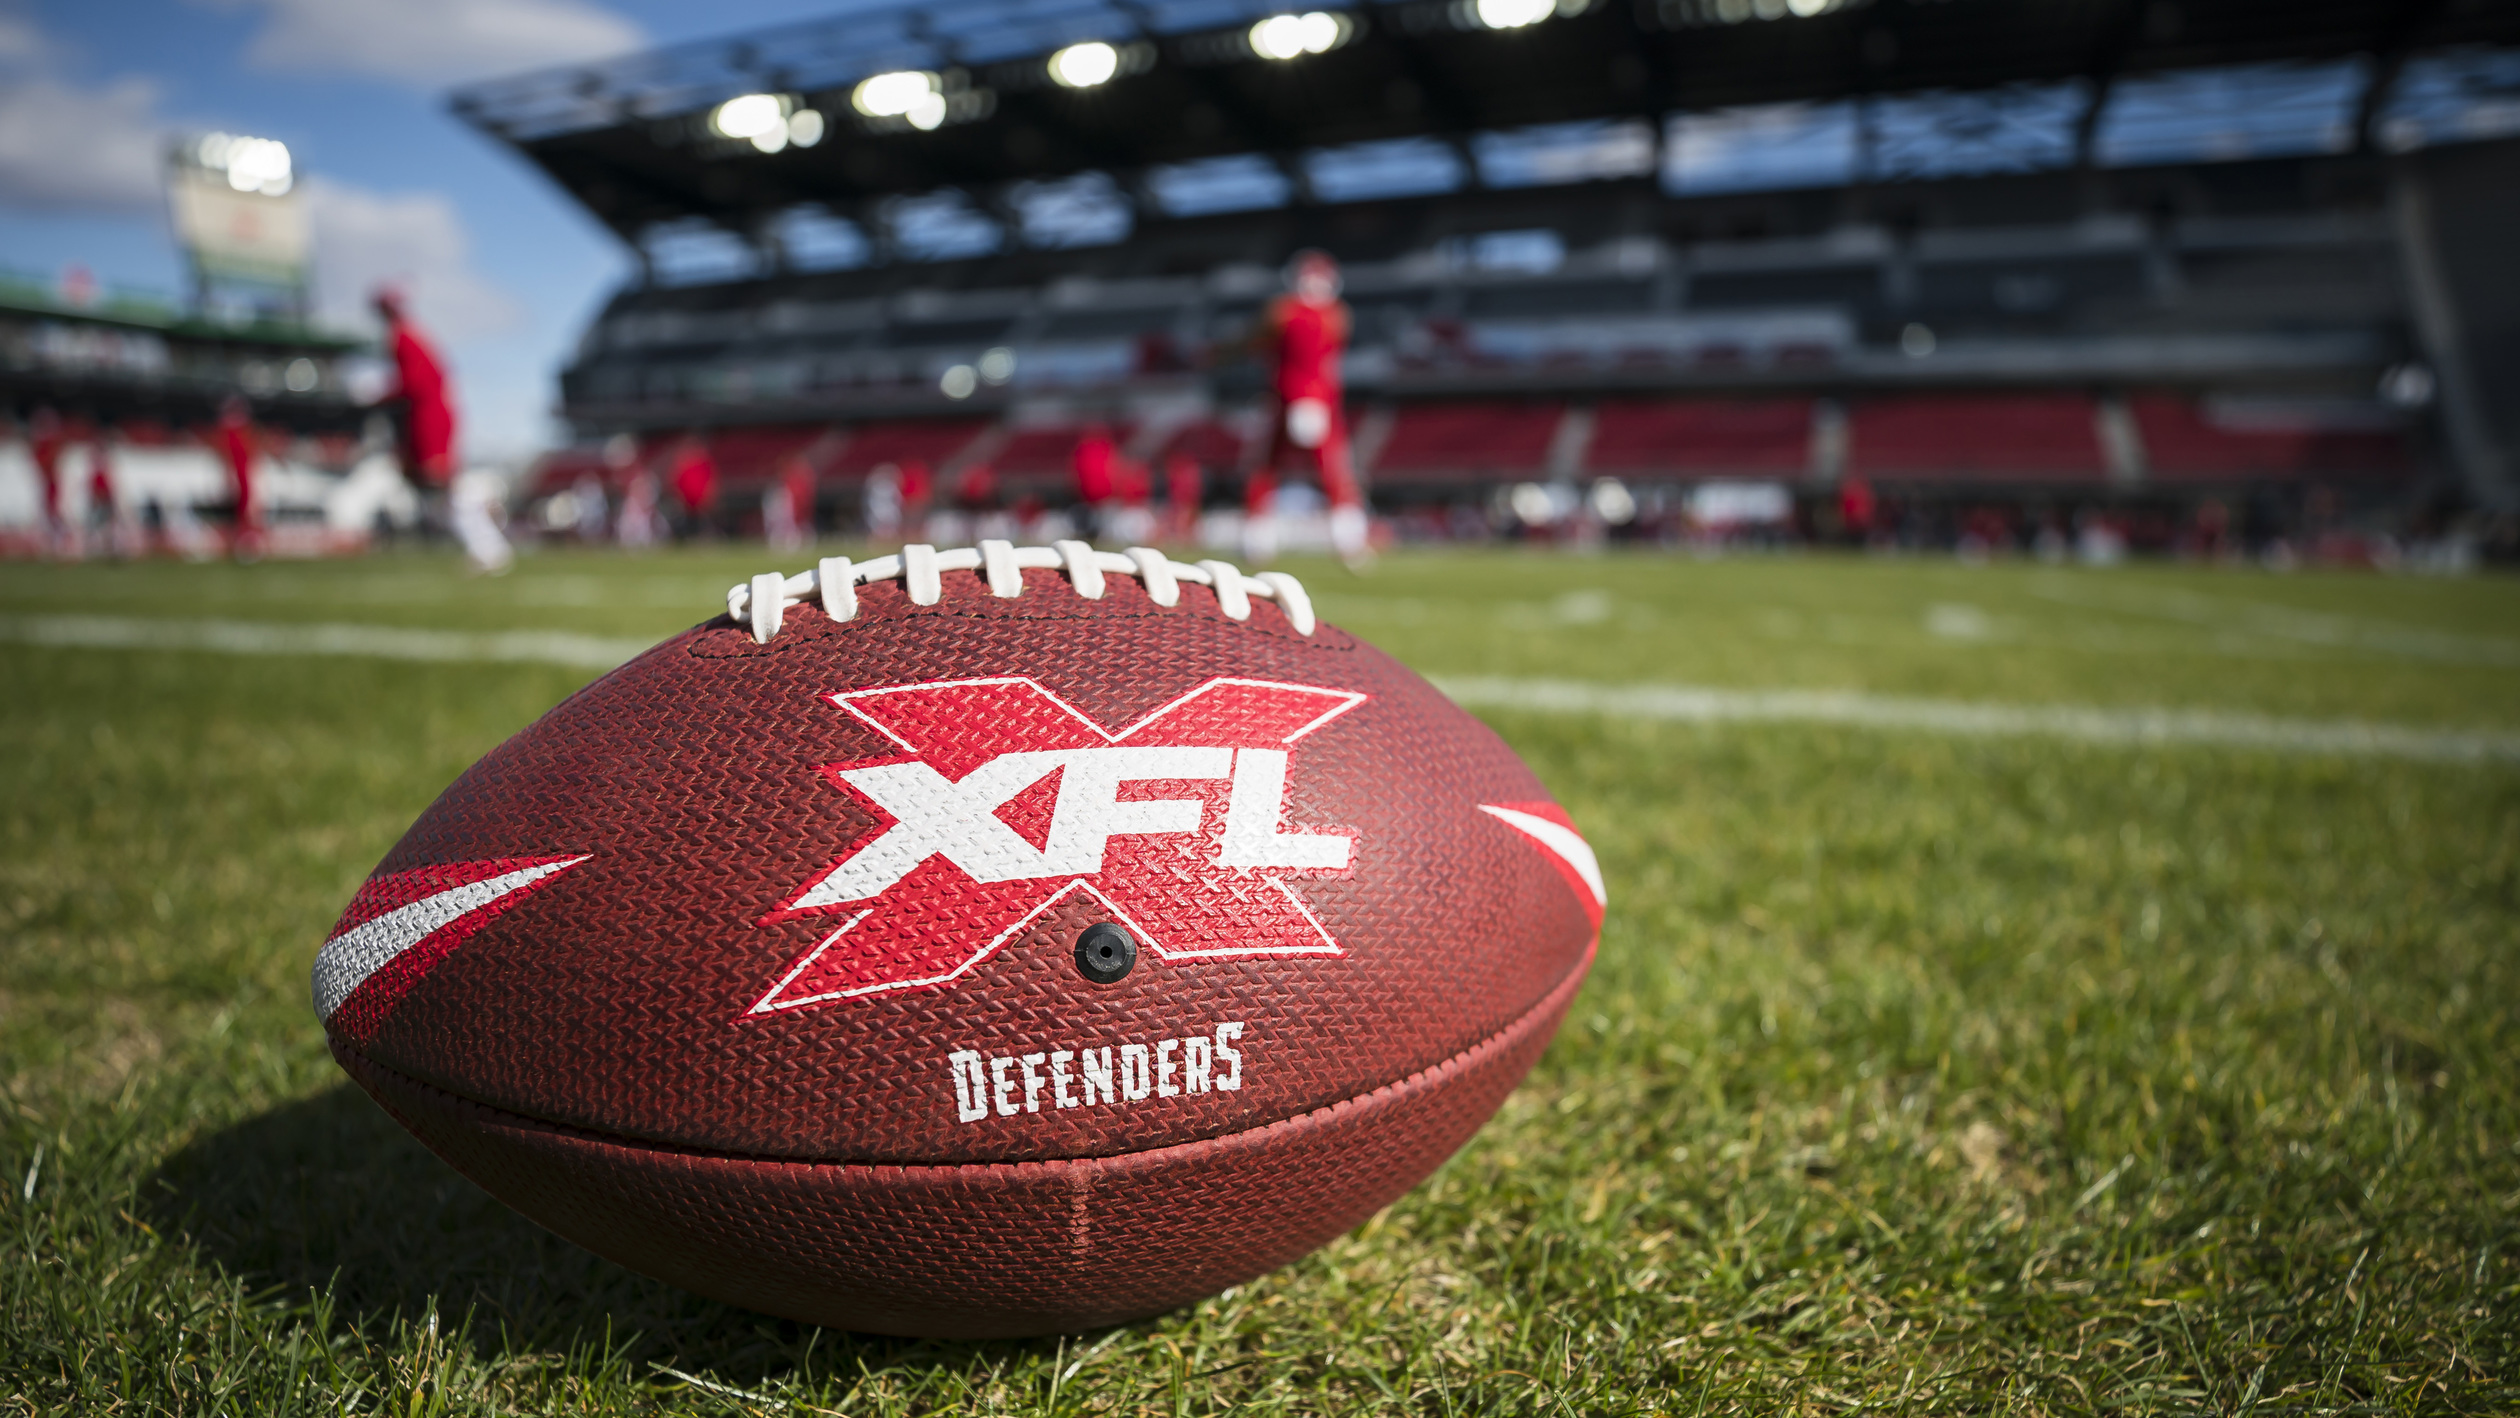 XFL draws good opening weekend ratings, but needs star playe